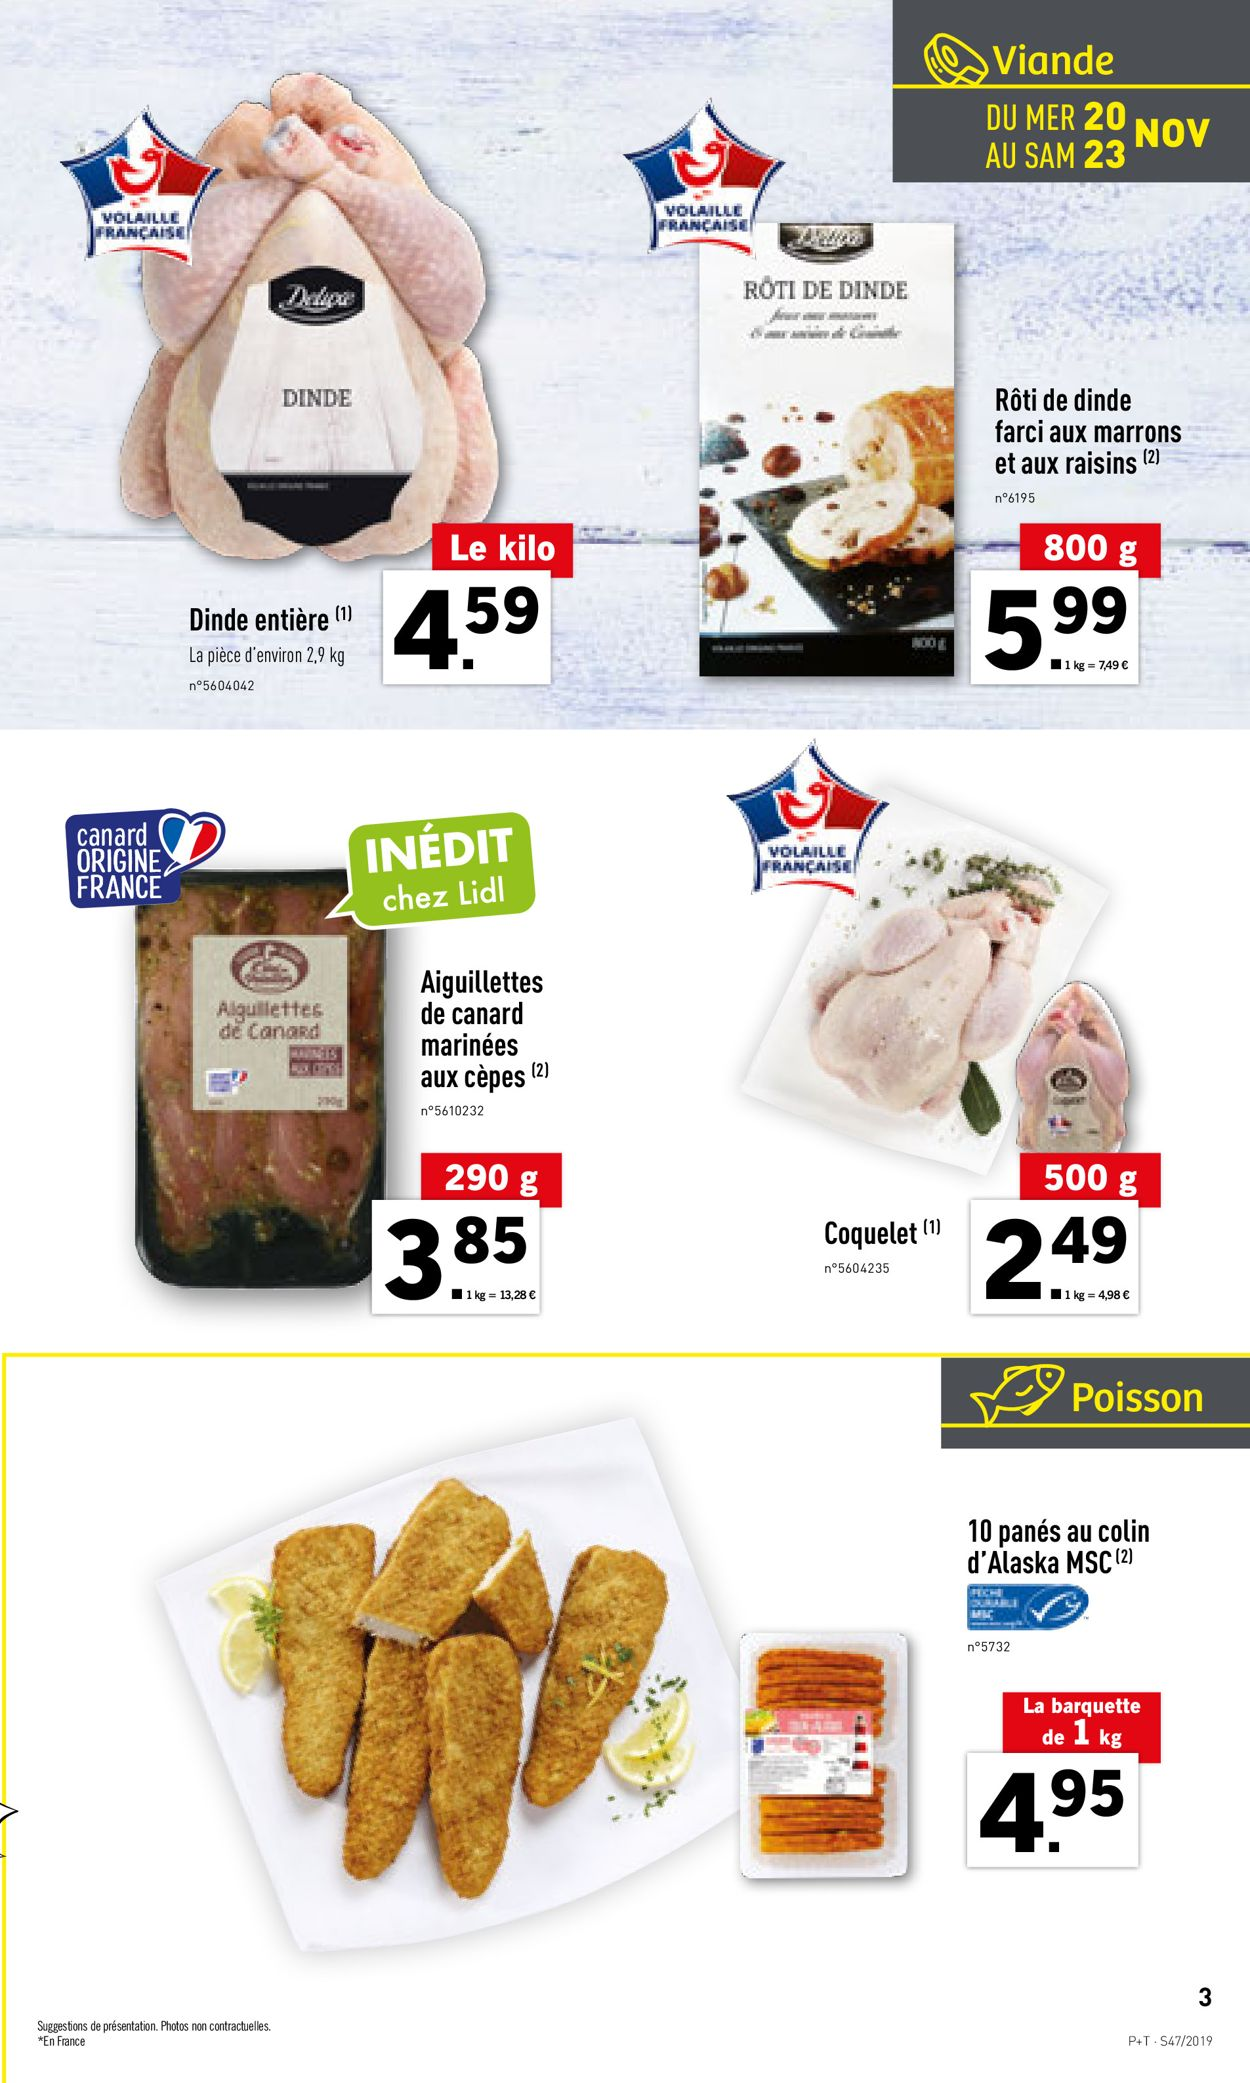 Lidl Catalogue - 20.11-26.11.2019 (Page 3)